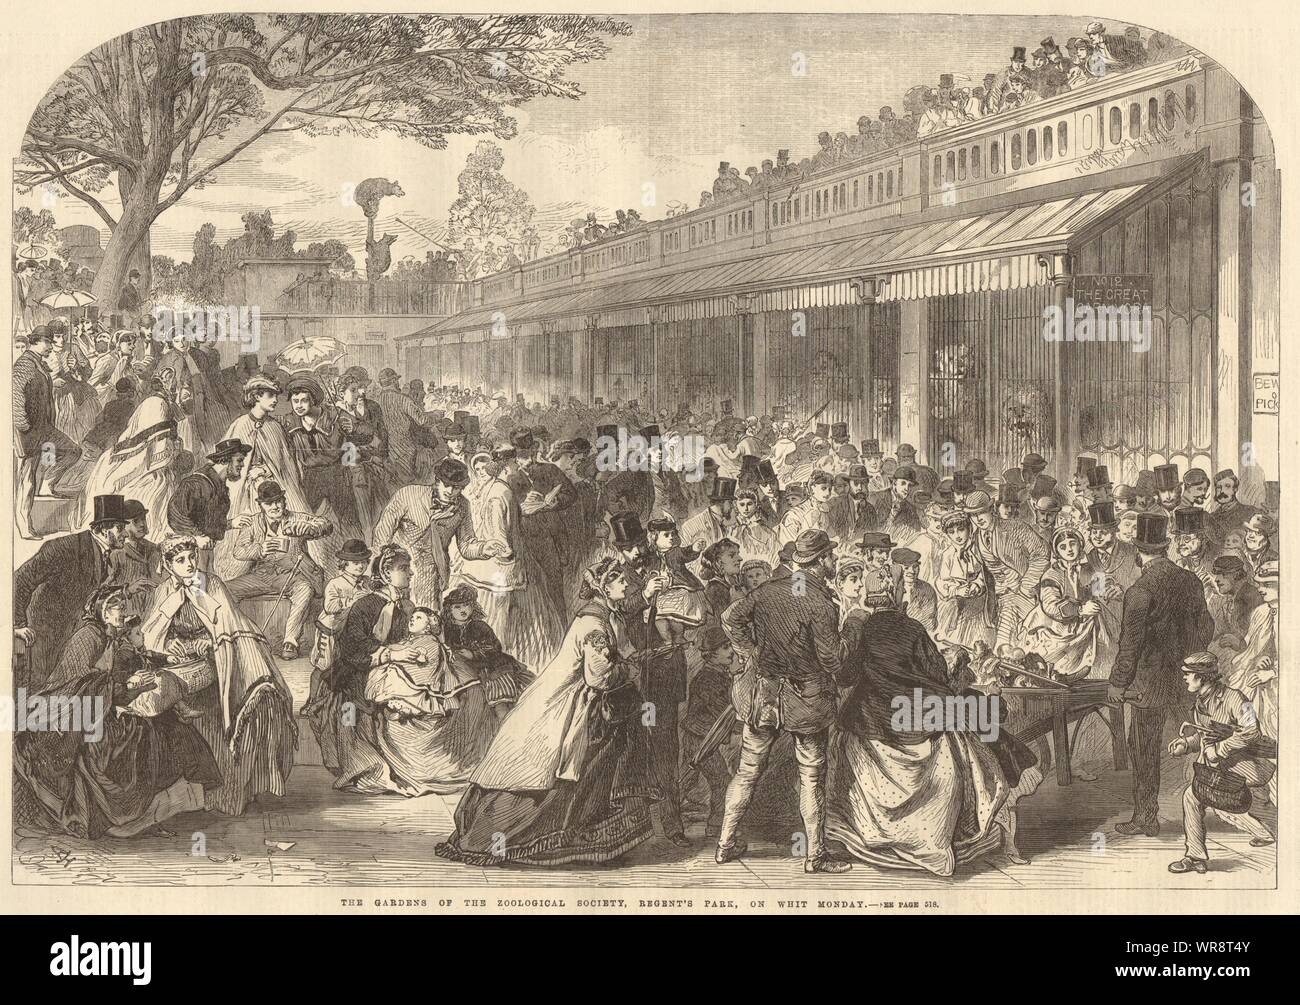 The Zoological Society's Gardens, Regent's Park, on Whit Monday. London 1866 Stock Photo